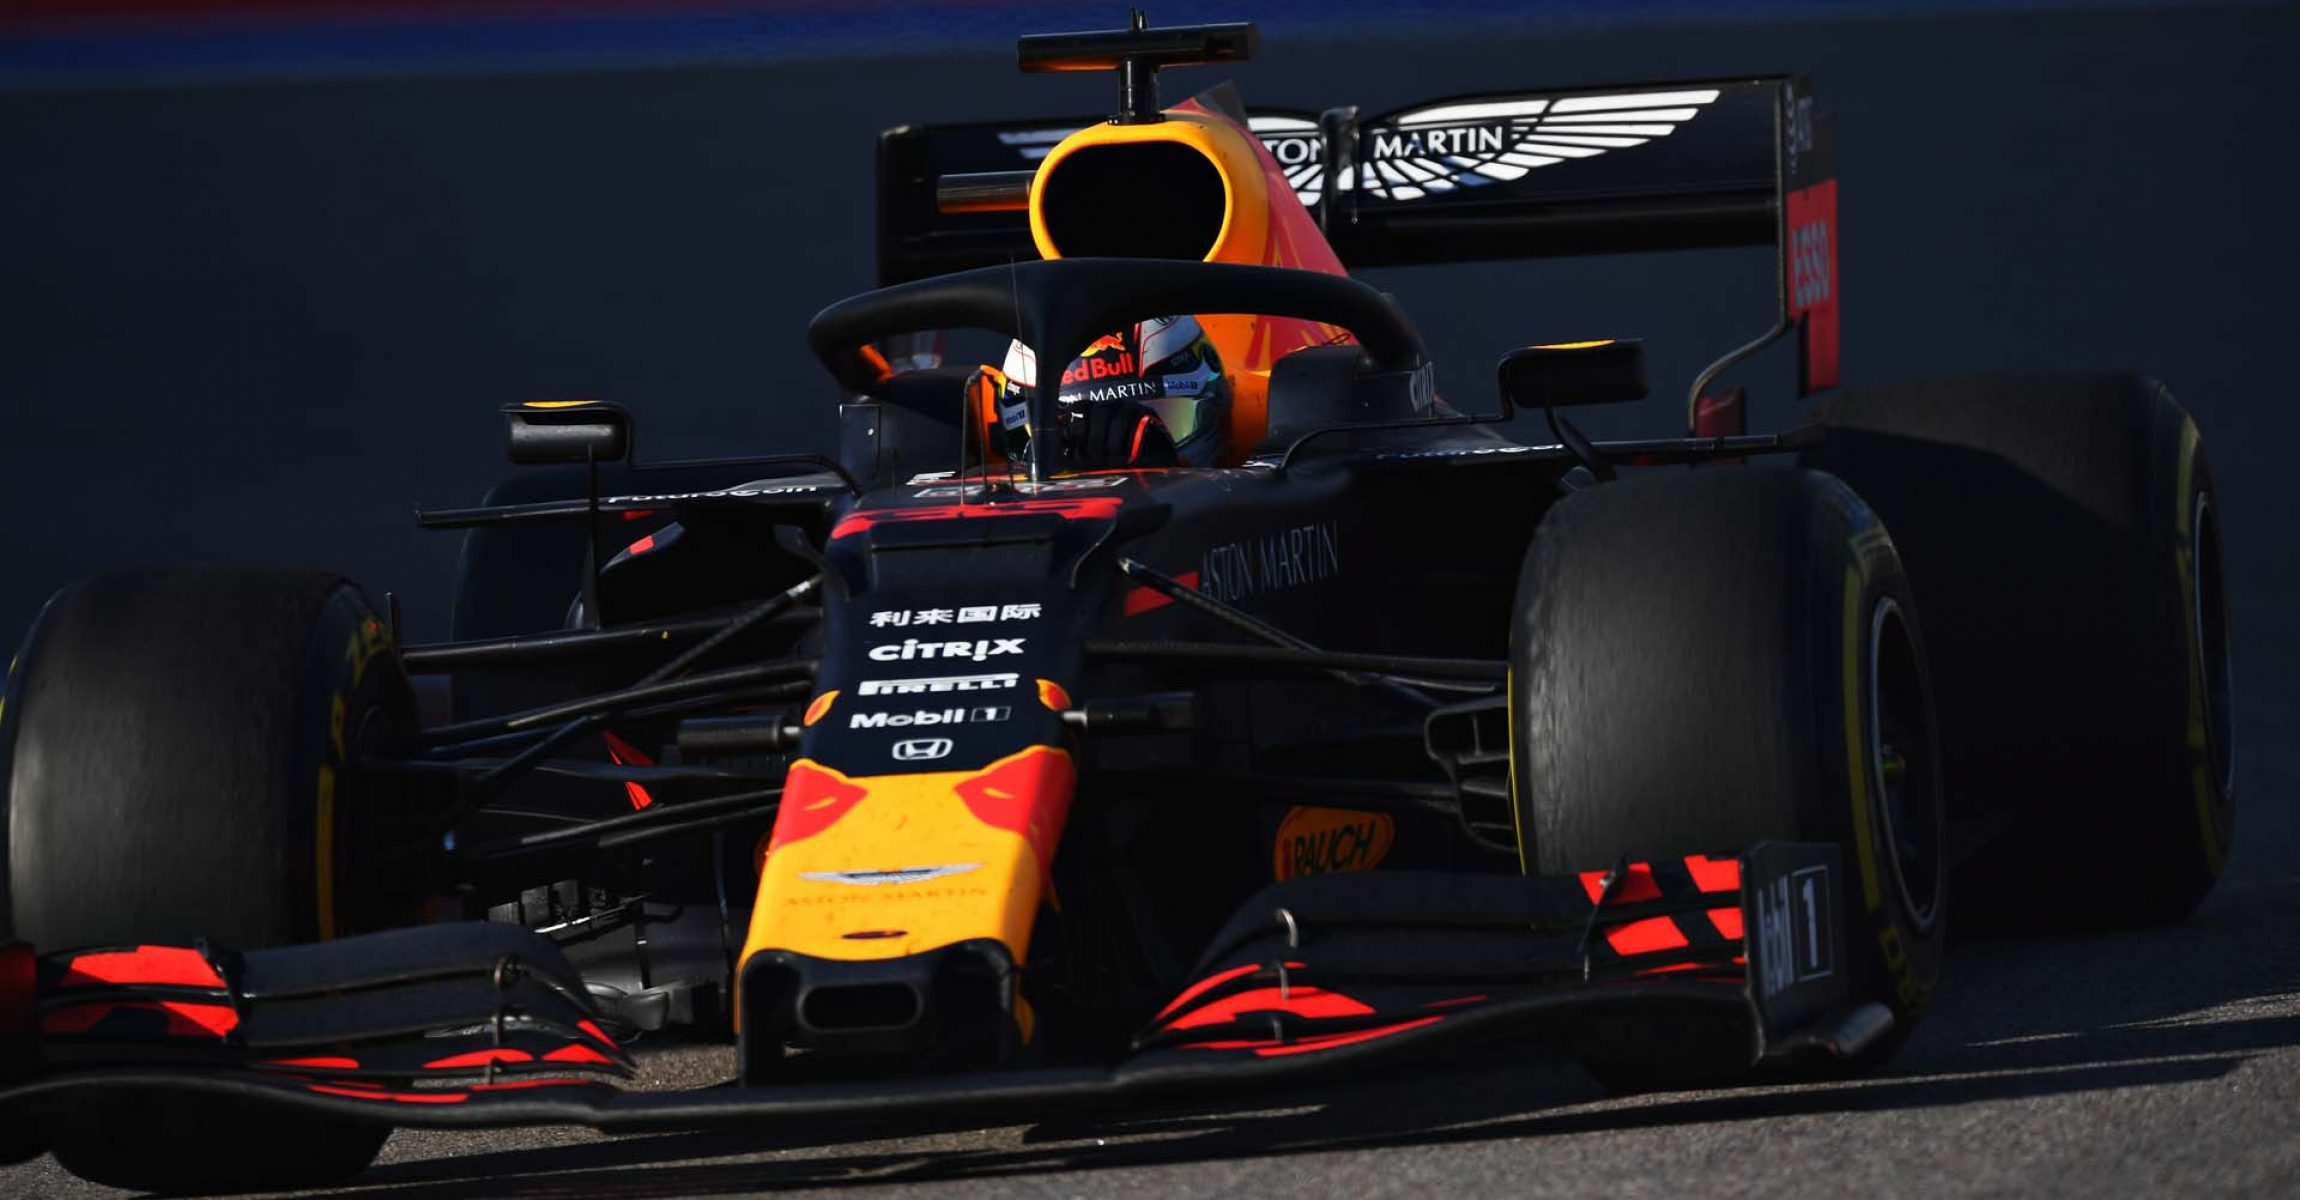 SOCHI, RUSSIA - SEPTEMBER 29: Max Verstappen of the Netherlands driving the (33) Aston Martin Red Bull Racing RB15 on track during the F1 Grand Prix of Russia at Sochi Autodrom on September 29, 2019 in Sochi, Russia. (Photo by Clive Mason/Getty Images) // Getty Images / Red Bull Content Pool  // AP-21QK5ZJK92111 // Usage for editorial use only //